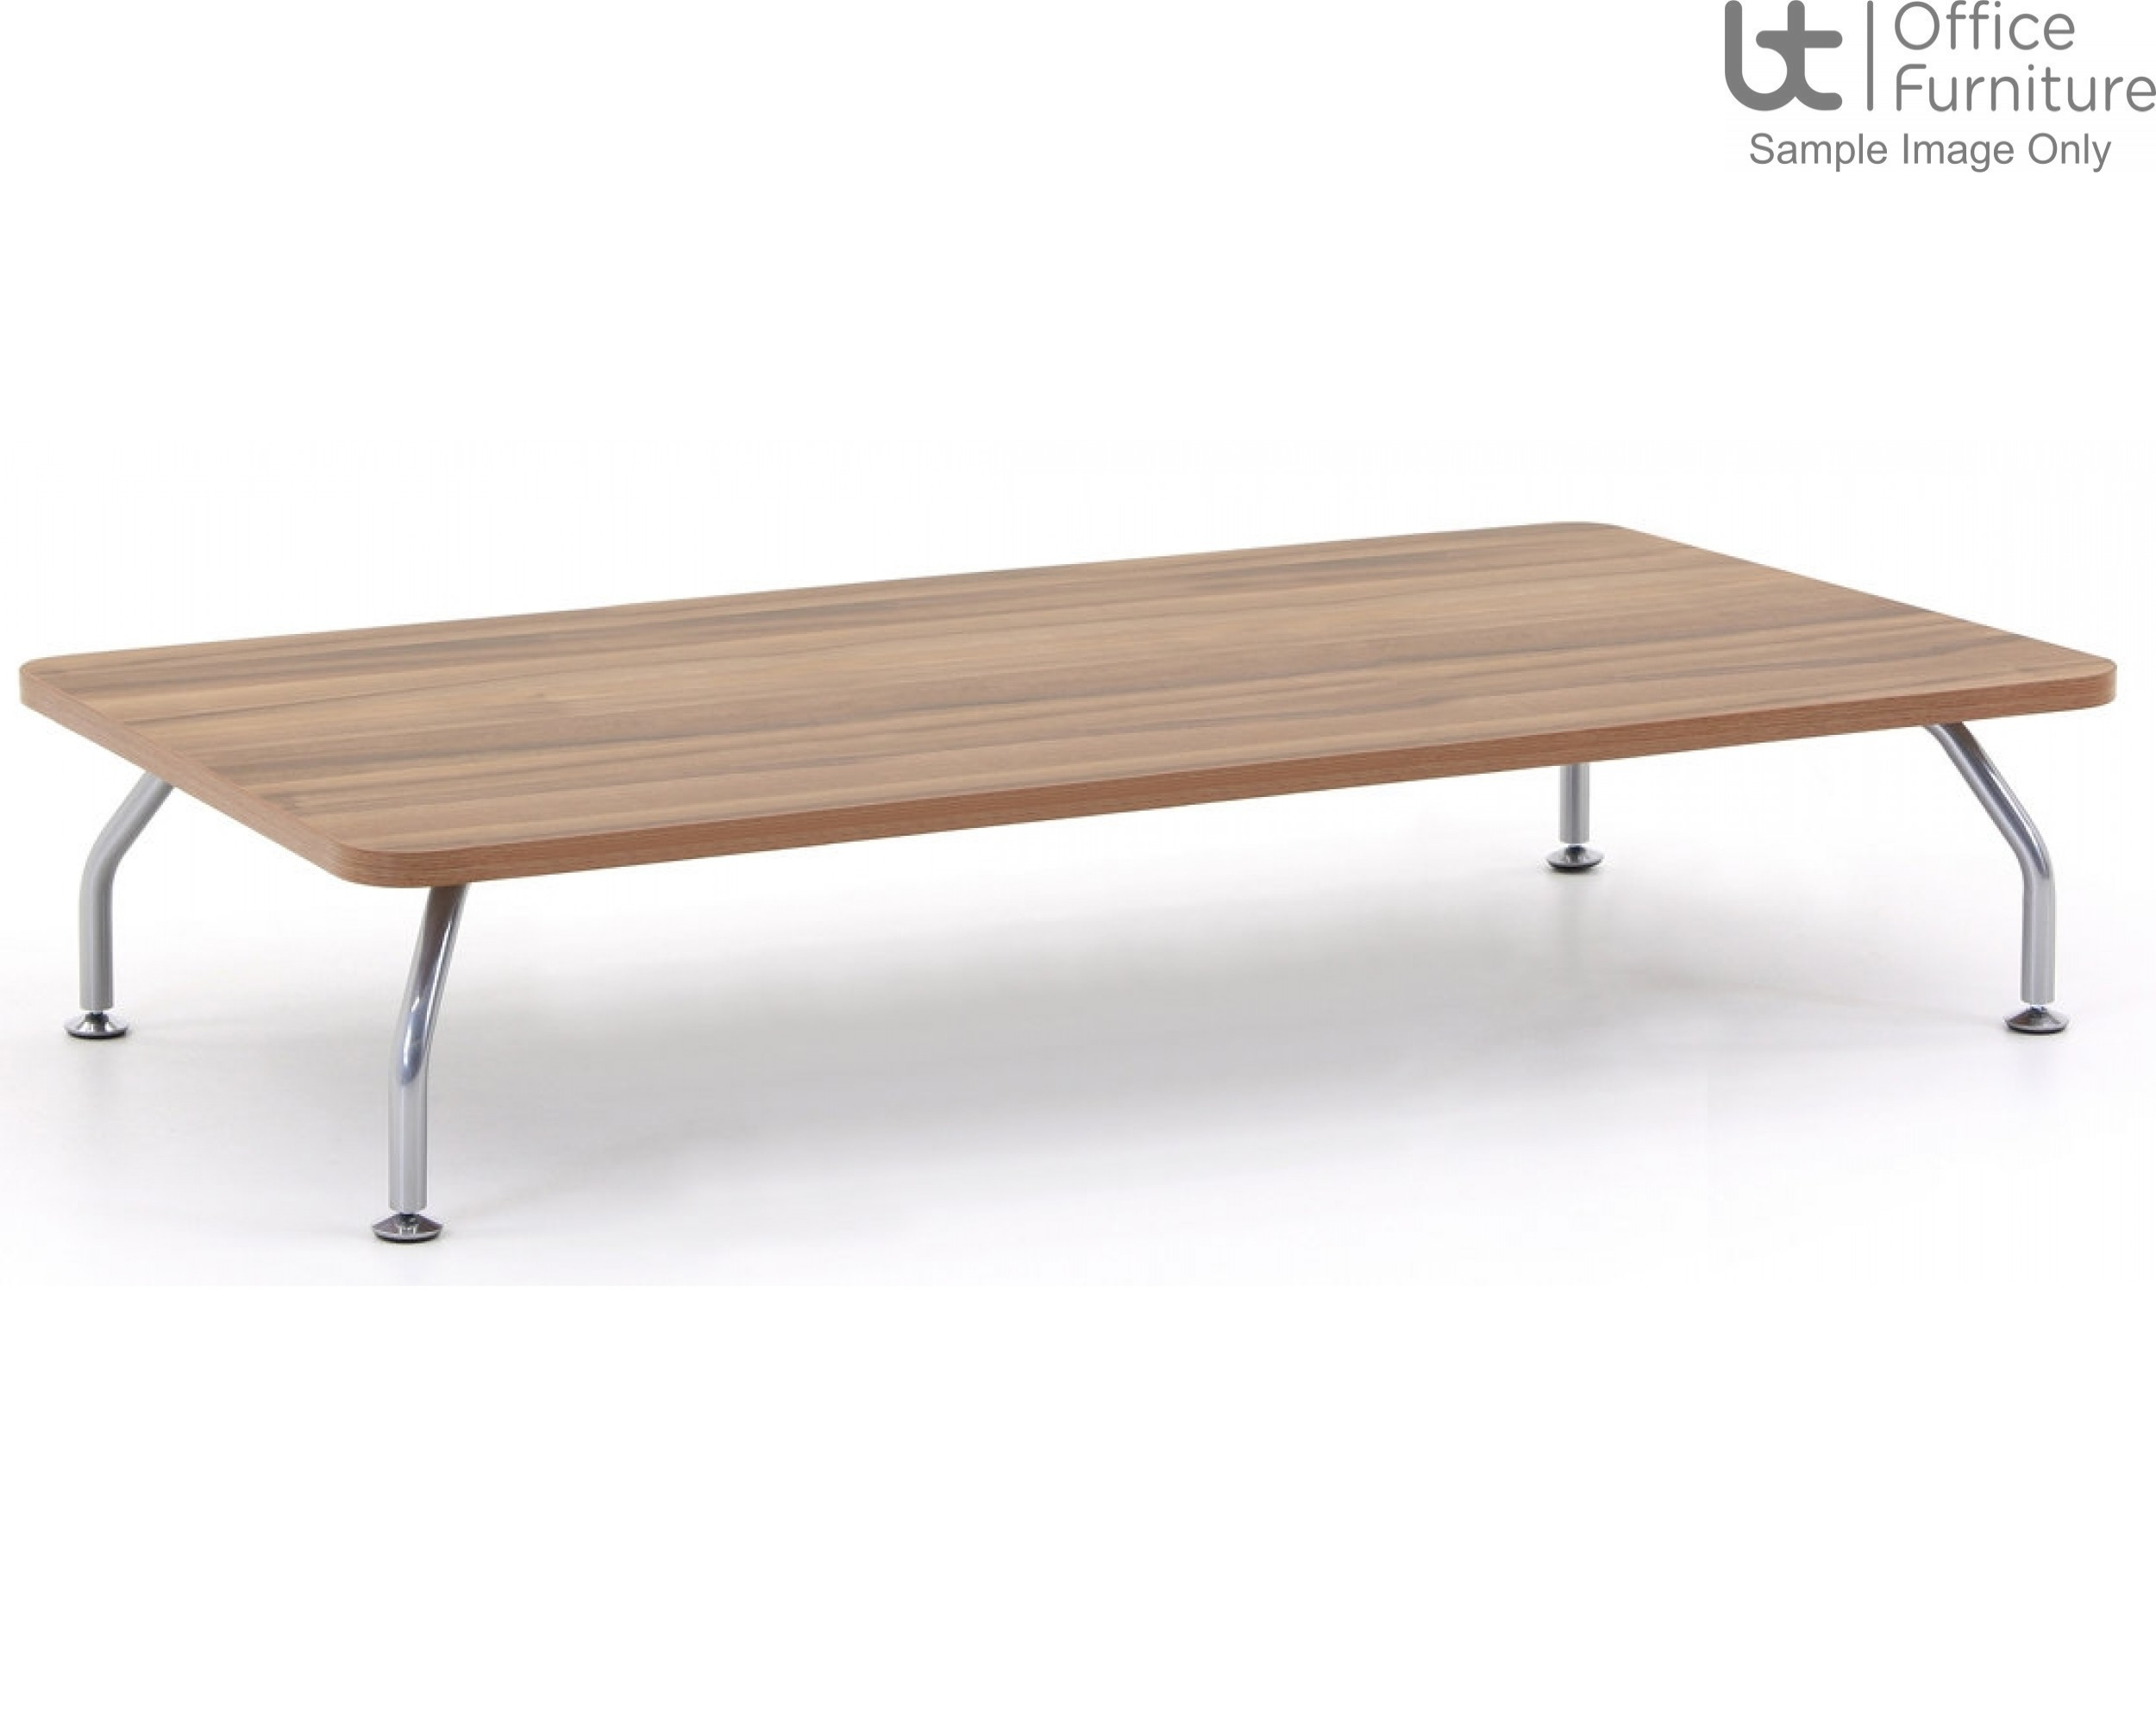 Verco Soft Seating - Brix Low Level recatngle Coffee Table